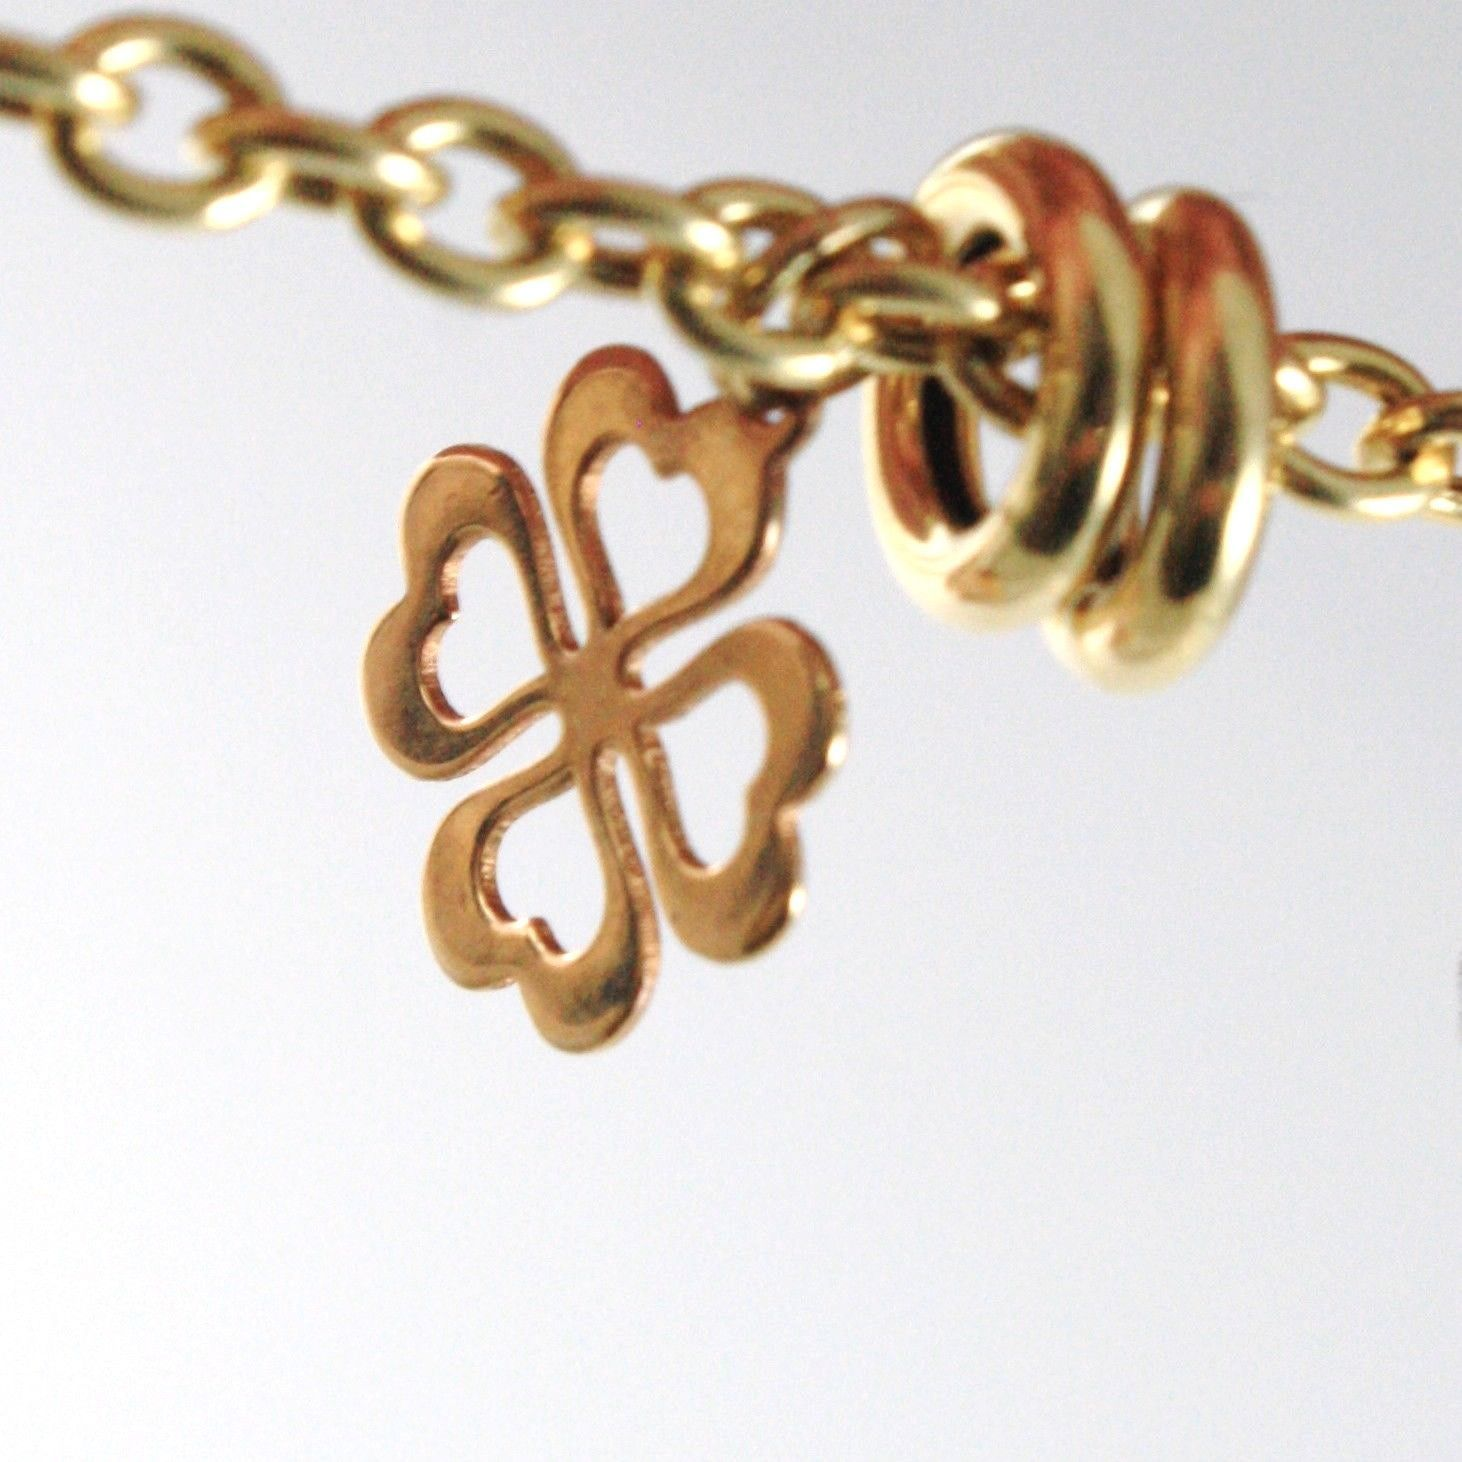 BRACELET YELLOW GOLD WHITE ROSE 18K 750,CIRCLES,FOUR-LEAF CLOVER AND HEARTS,